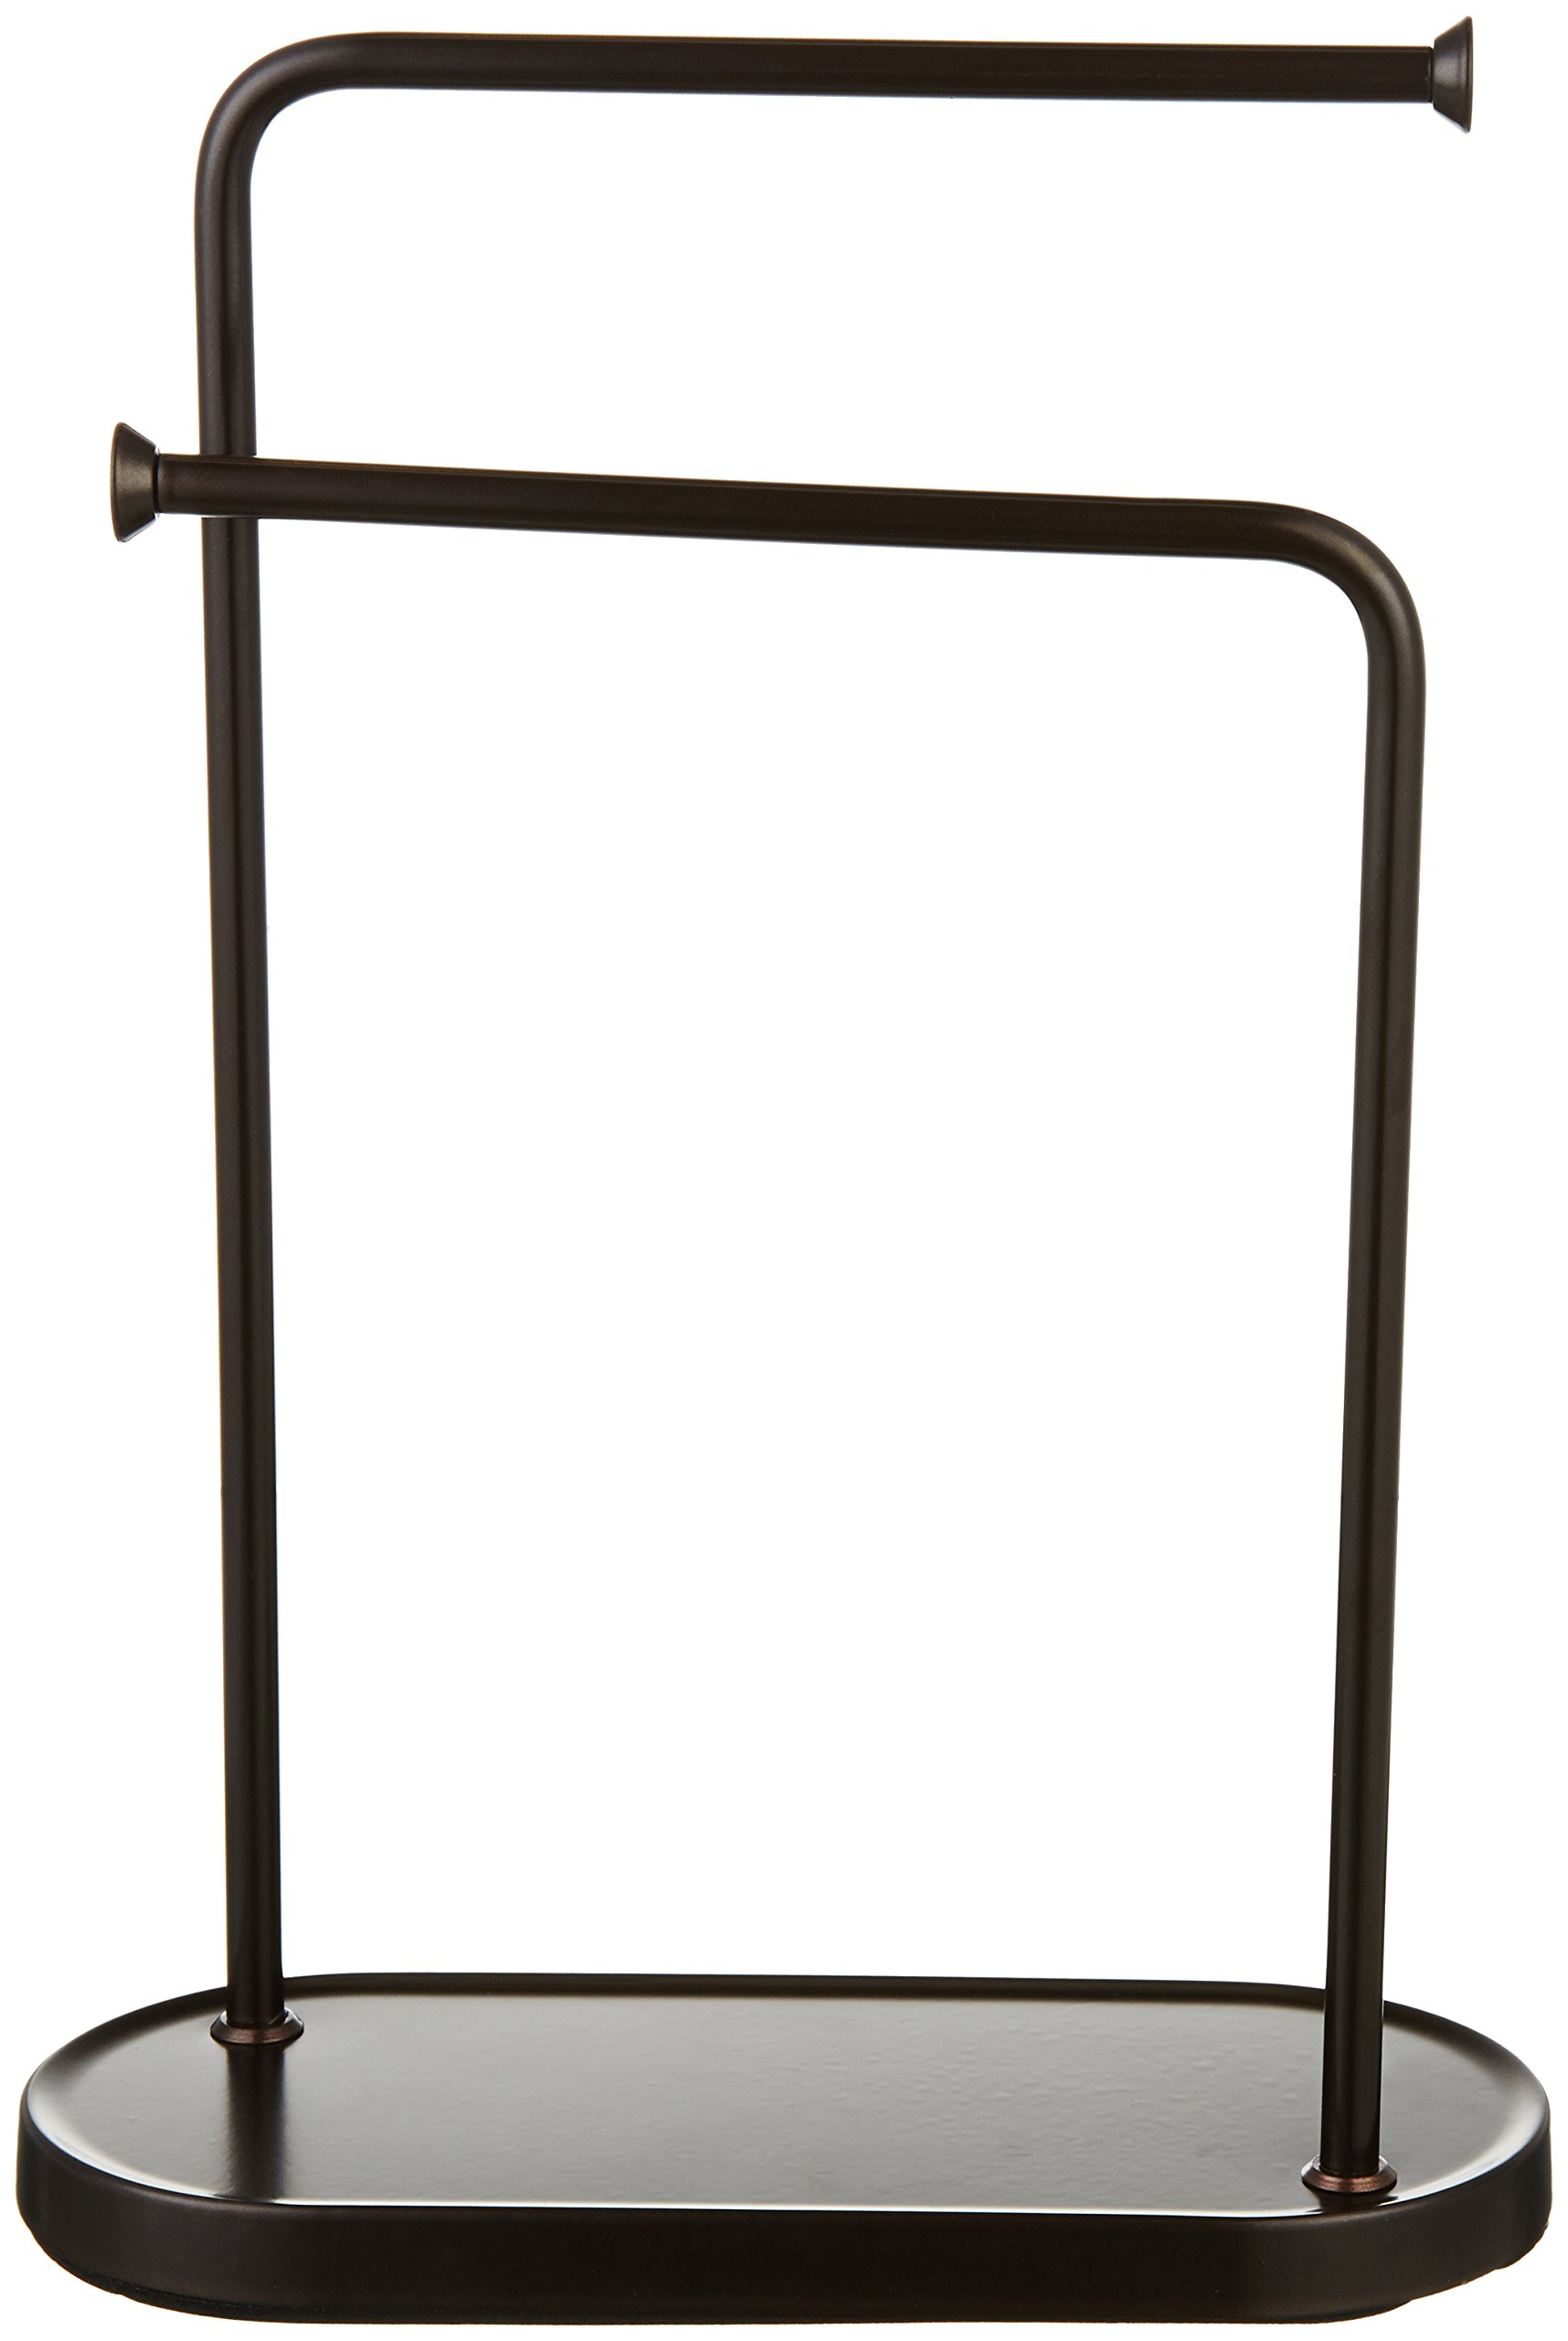 Double-L Hand Towel Stand